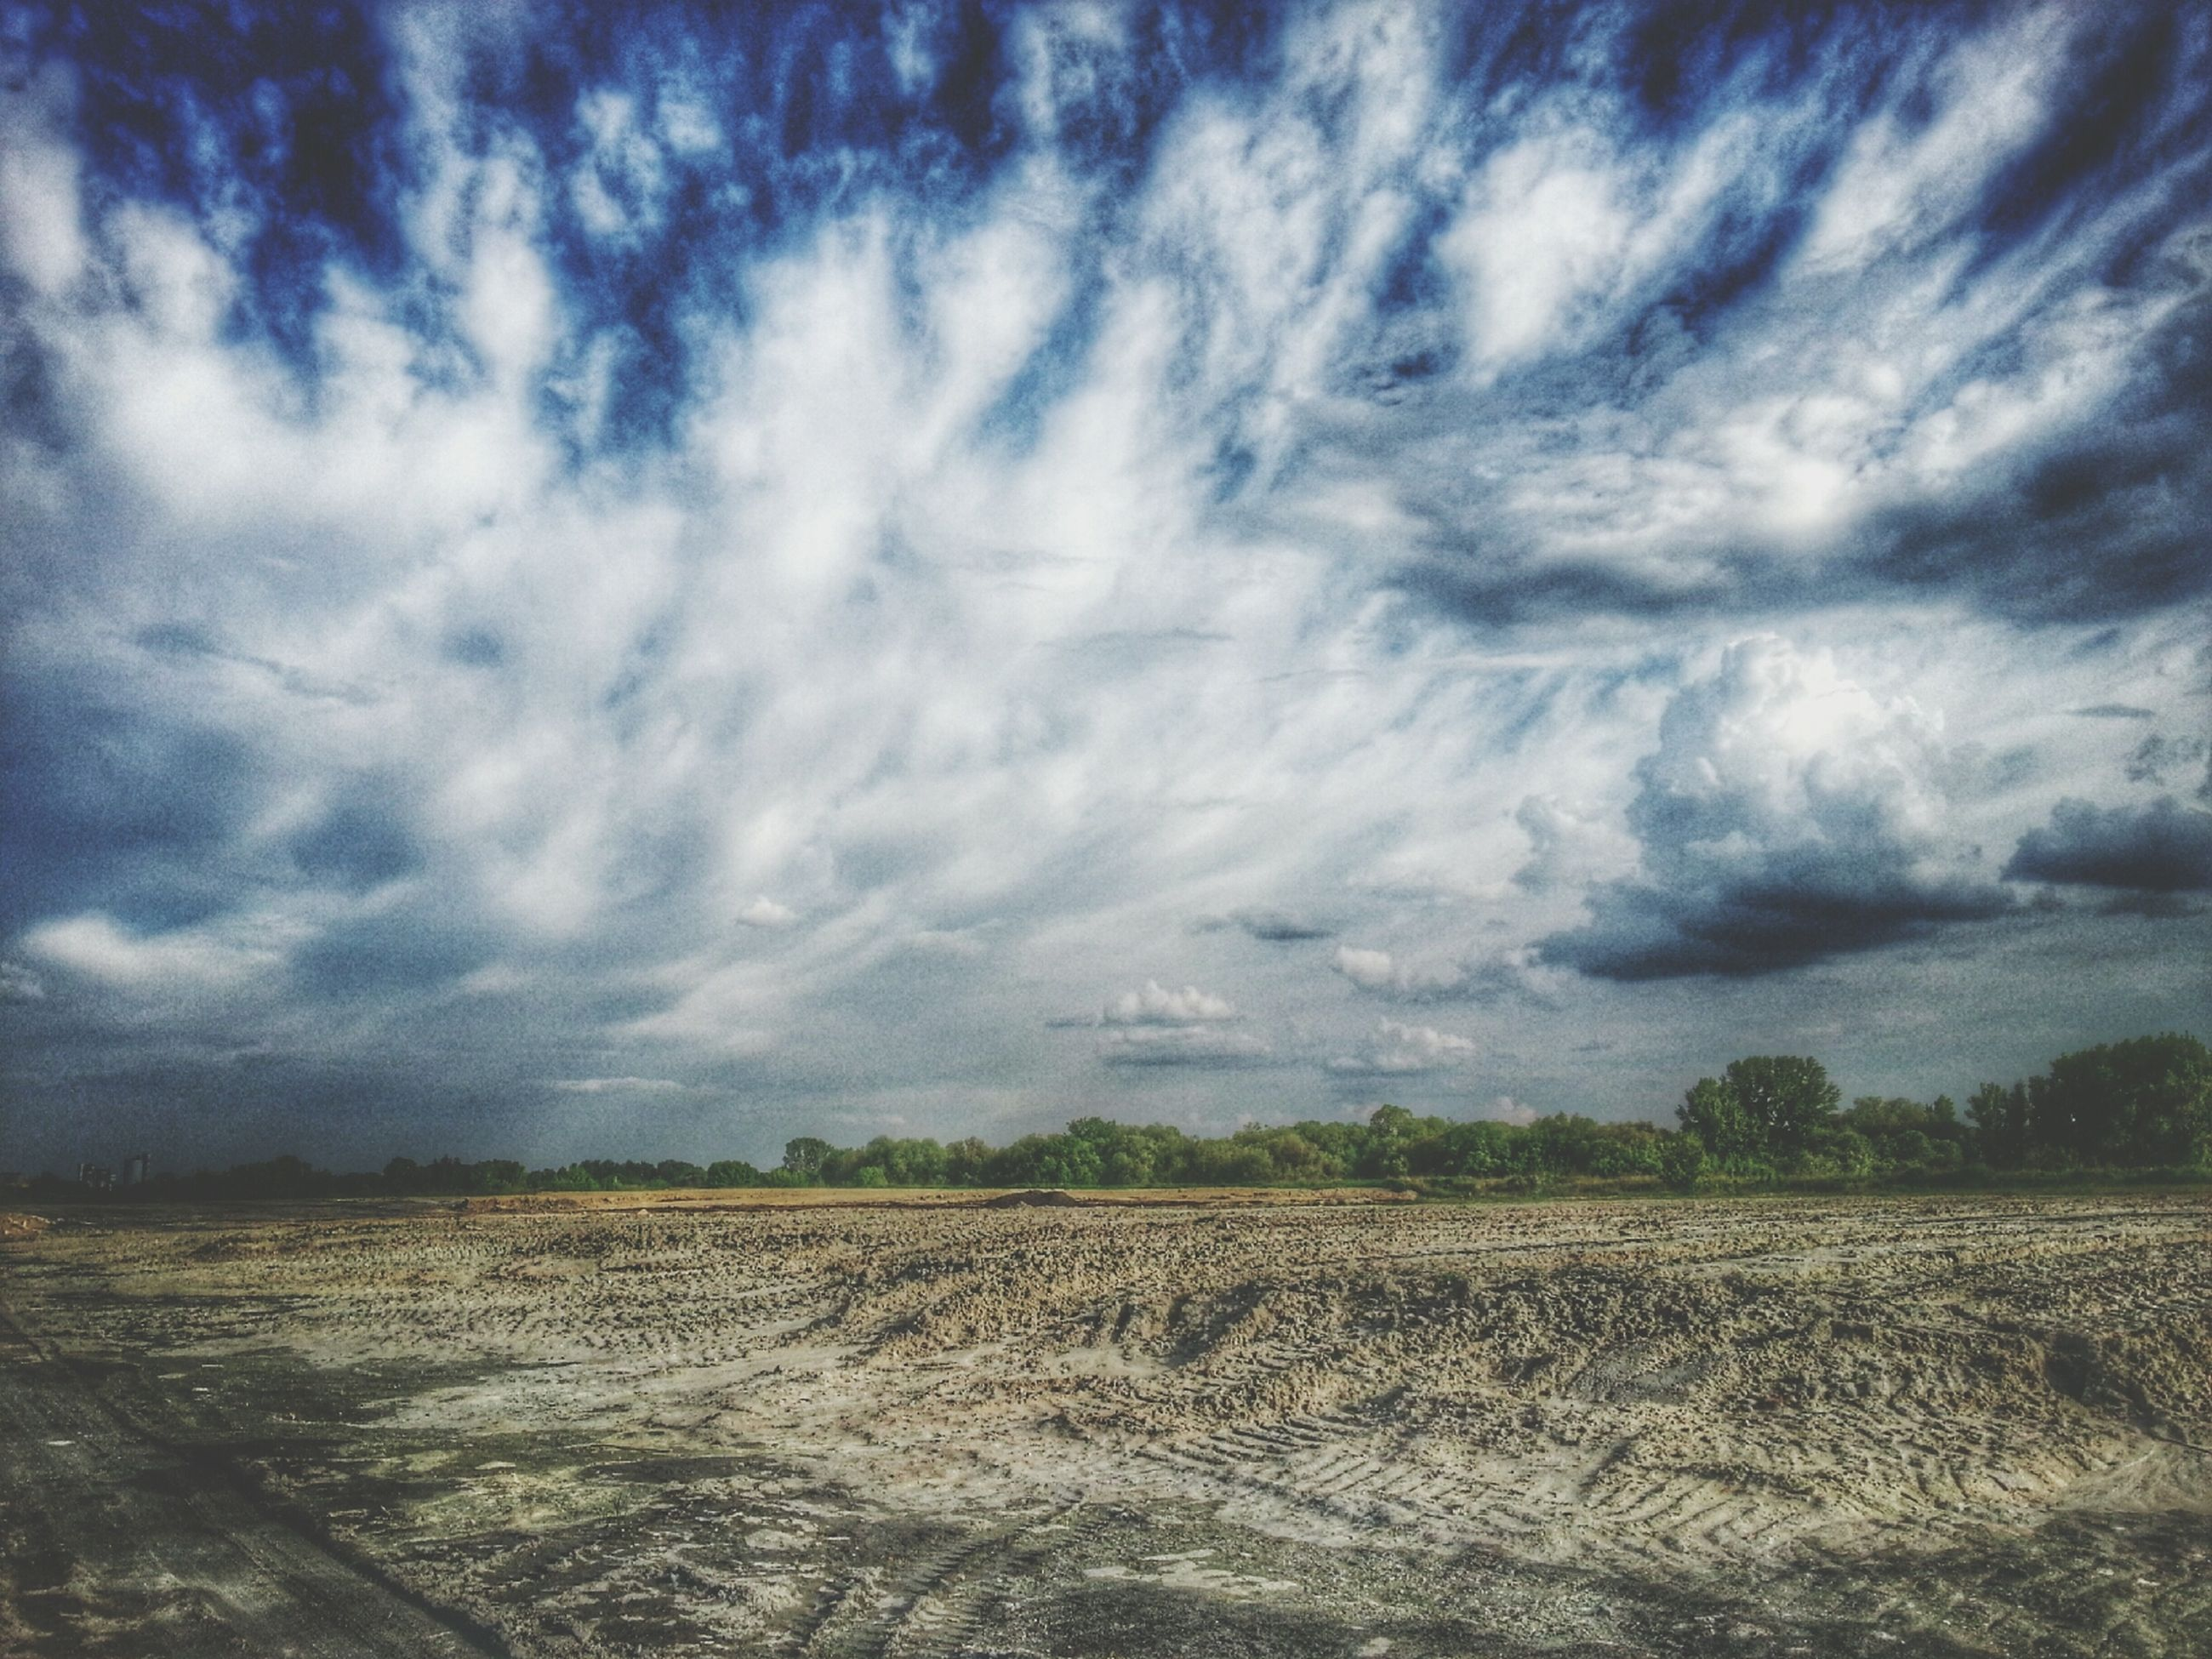 sky, landscape, cloud - sky, tranquil scene, tranquility, field, cloudy, scenics, agriculture, rural scene, beauty in nature, nature, cloud, farm, growth, weather, non-urban scene, horizon over land, grass, idyllic